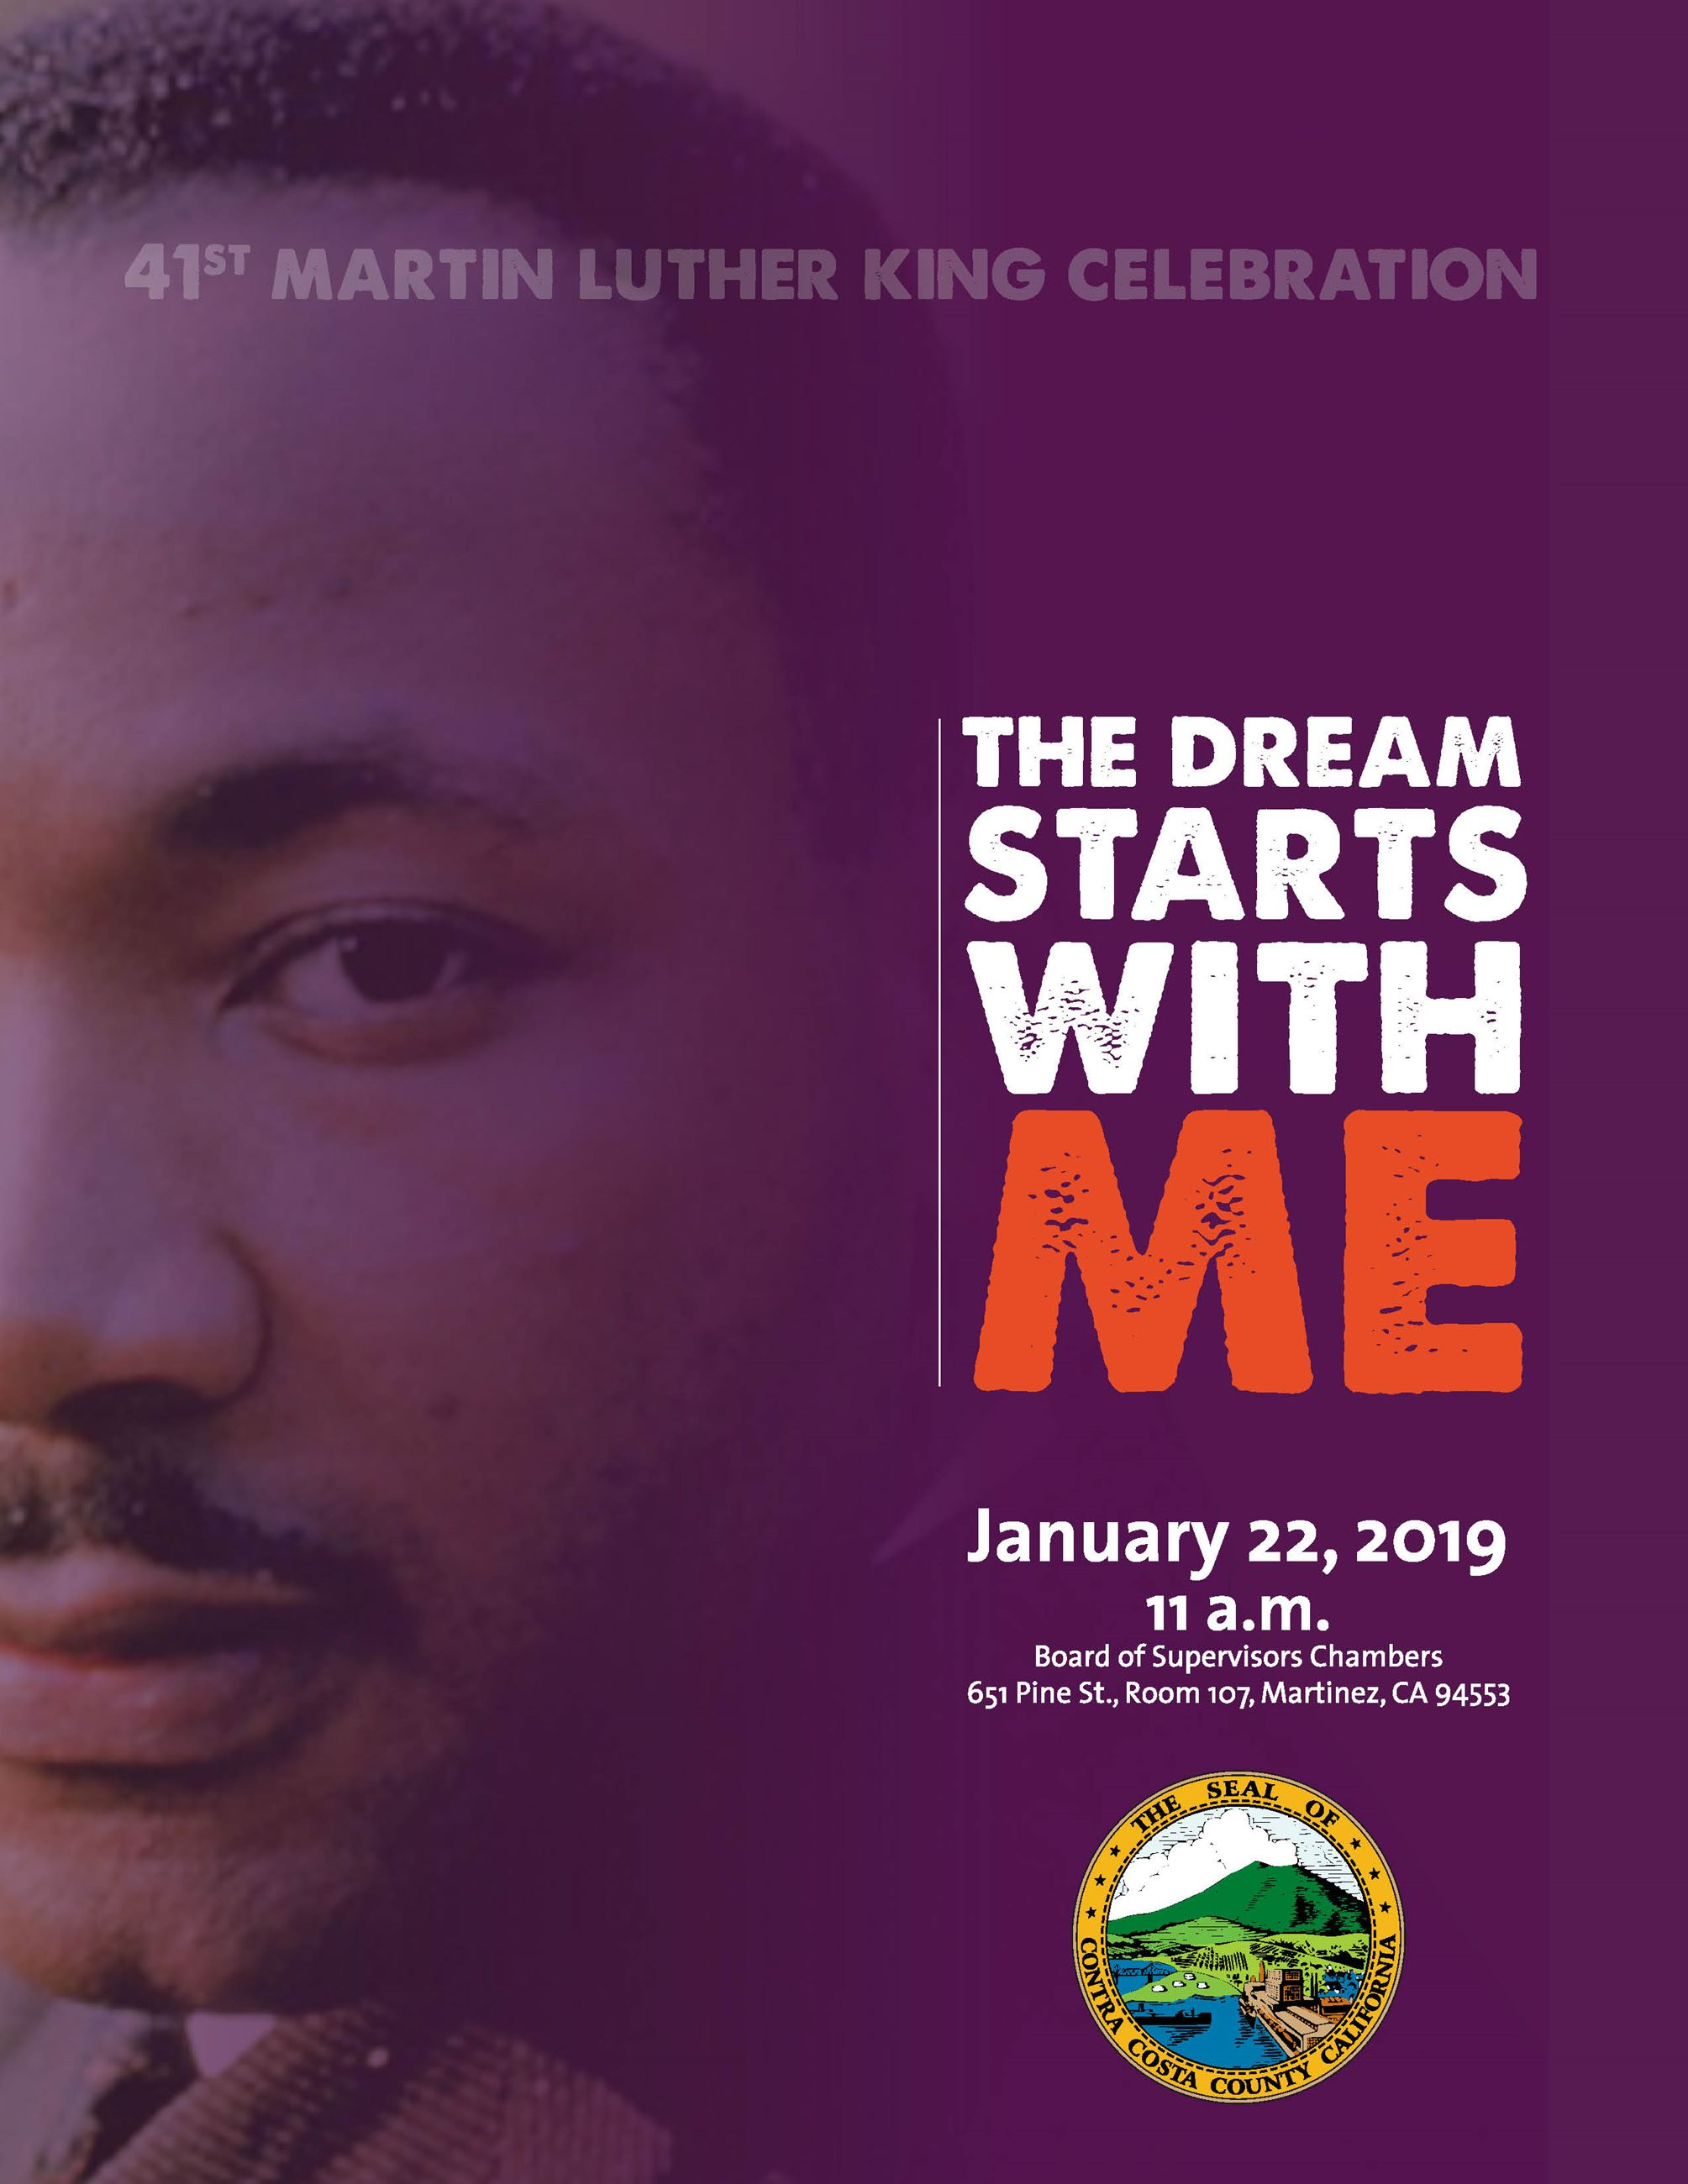 Dr. Martin Luther King, Jr. Save the Date: January 22, 2019